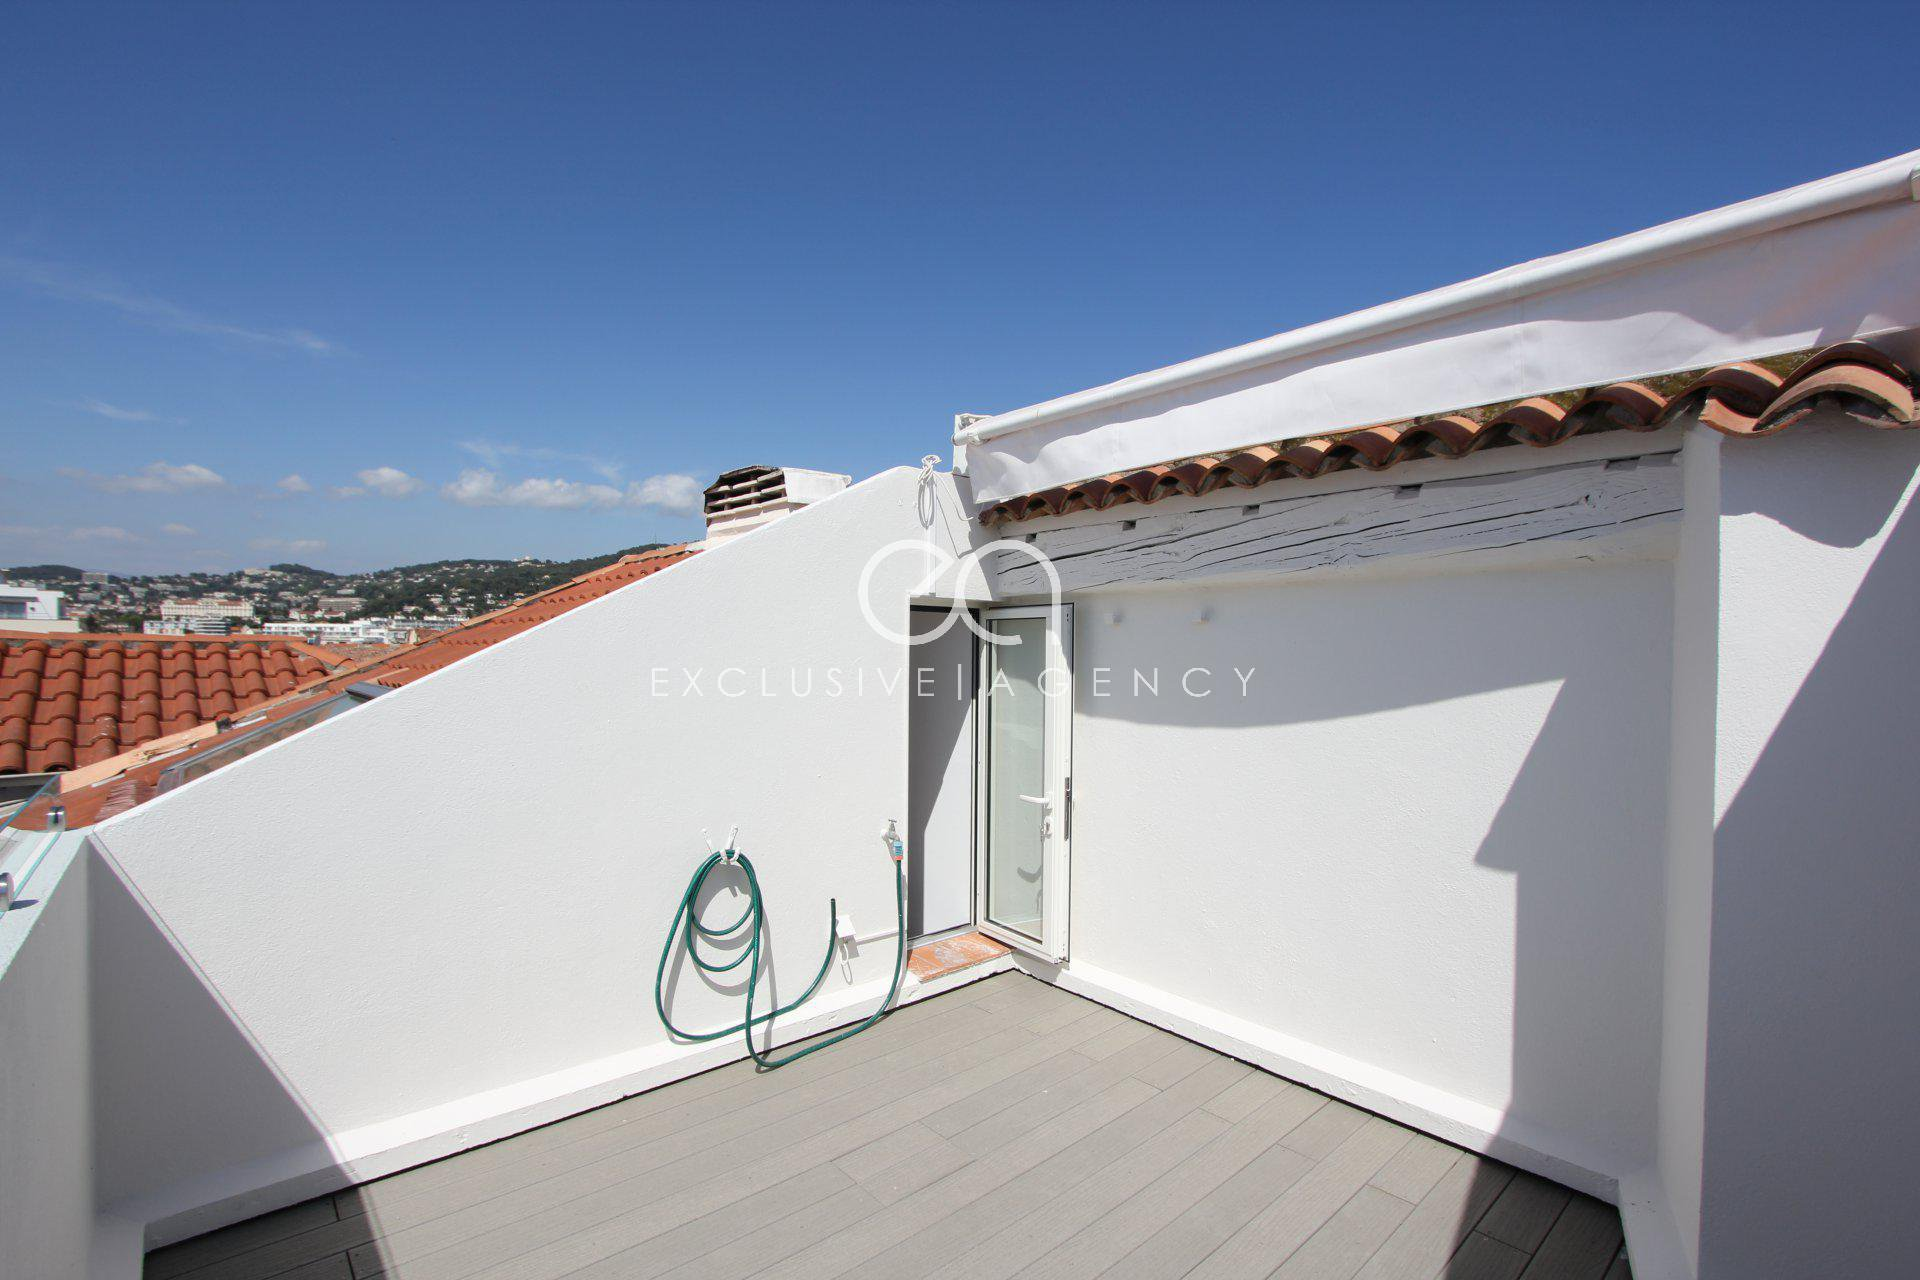 SEASONNAL RENTAL Cannes center luxurious 117sqm 3-bedroom apartment with double terrace for 3 to 8 people